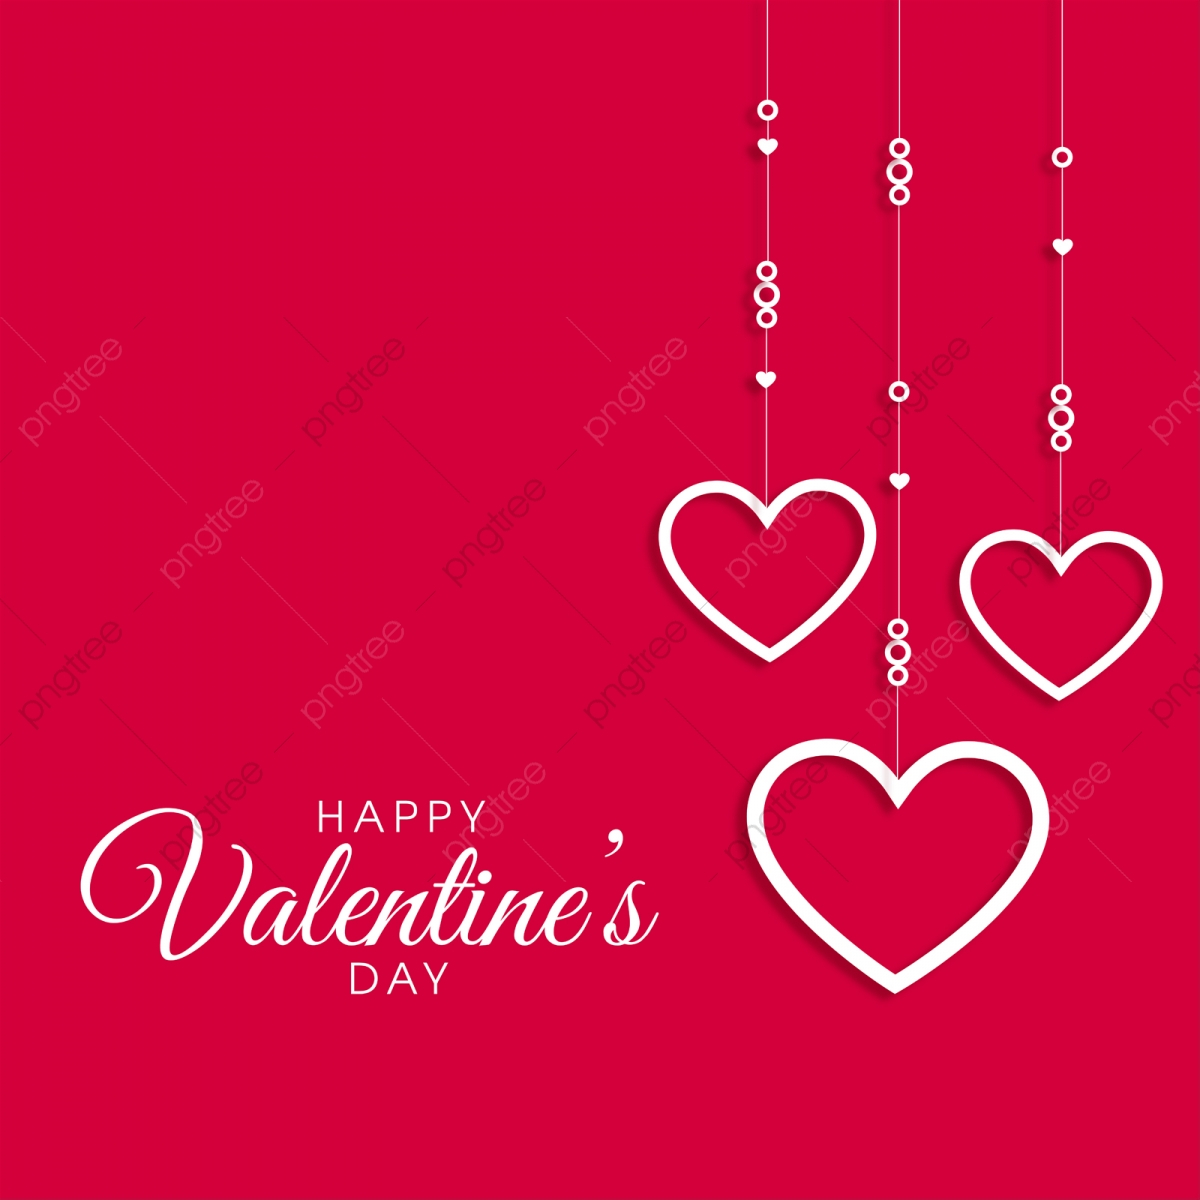 pngtree valentine day card on red background png image